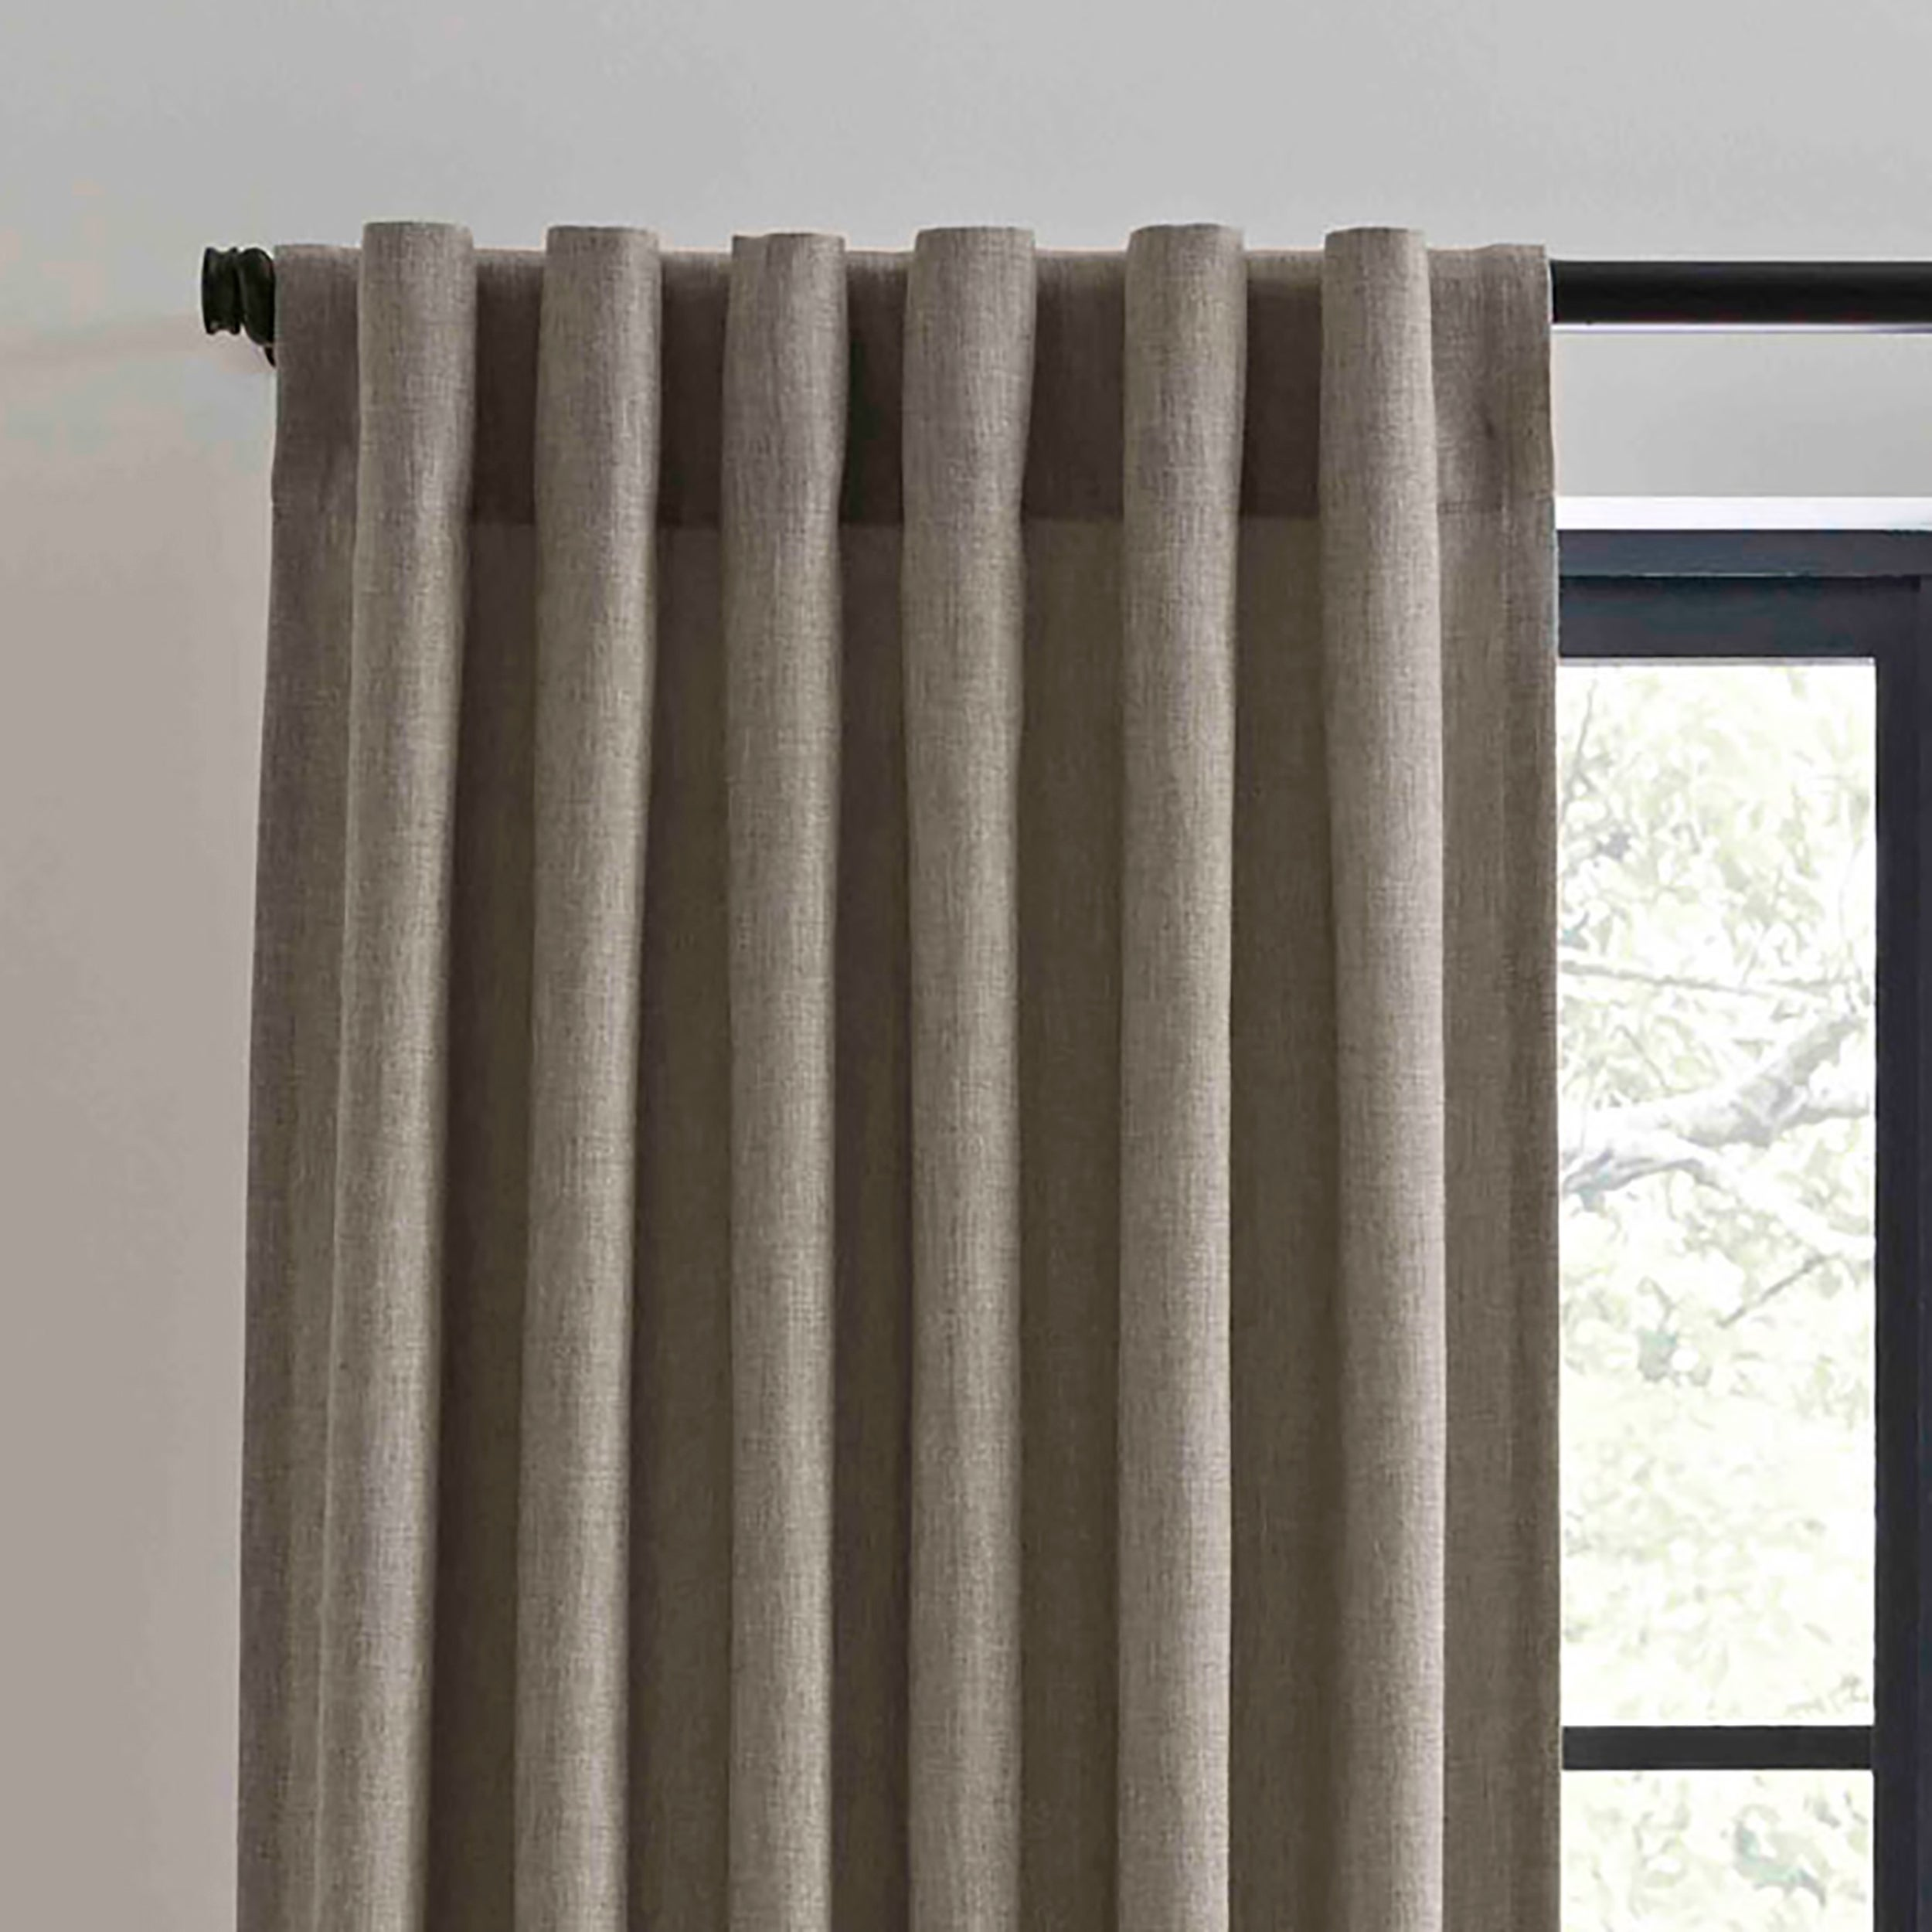 garden over home ellen tab pole orders shipping degeneres back top neutral on shadow overstock free panel drapes product